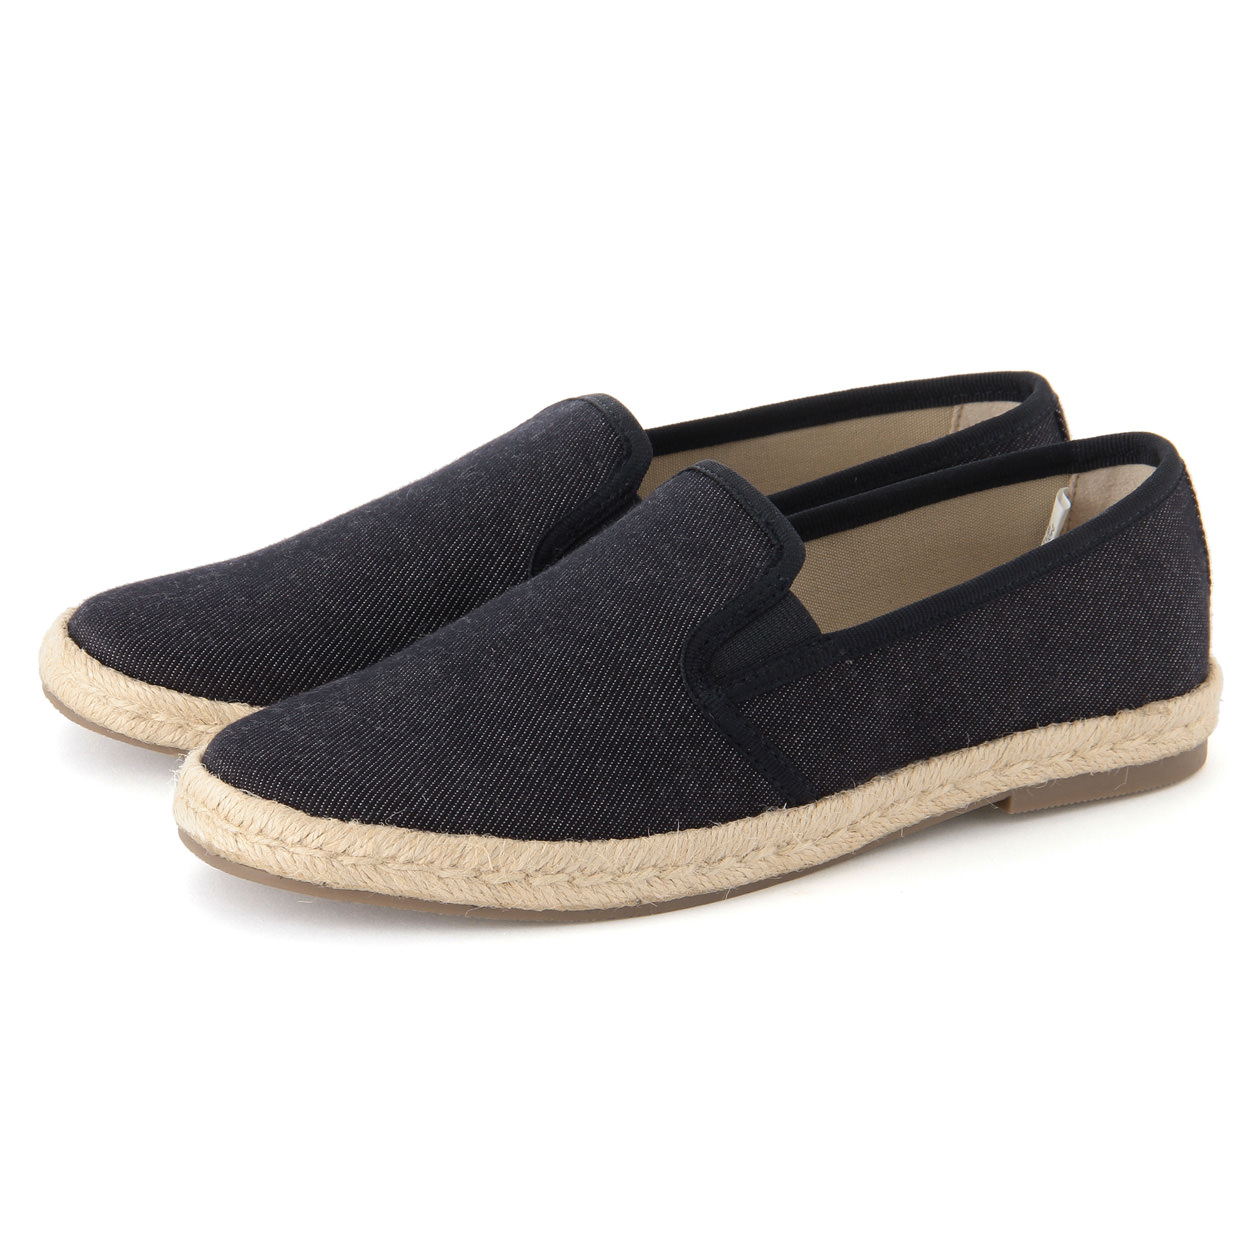 ESPADRILLE SLIP-ON SHOES